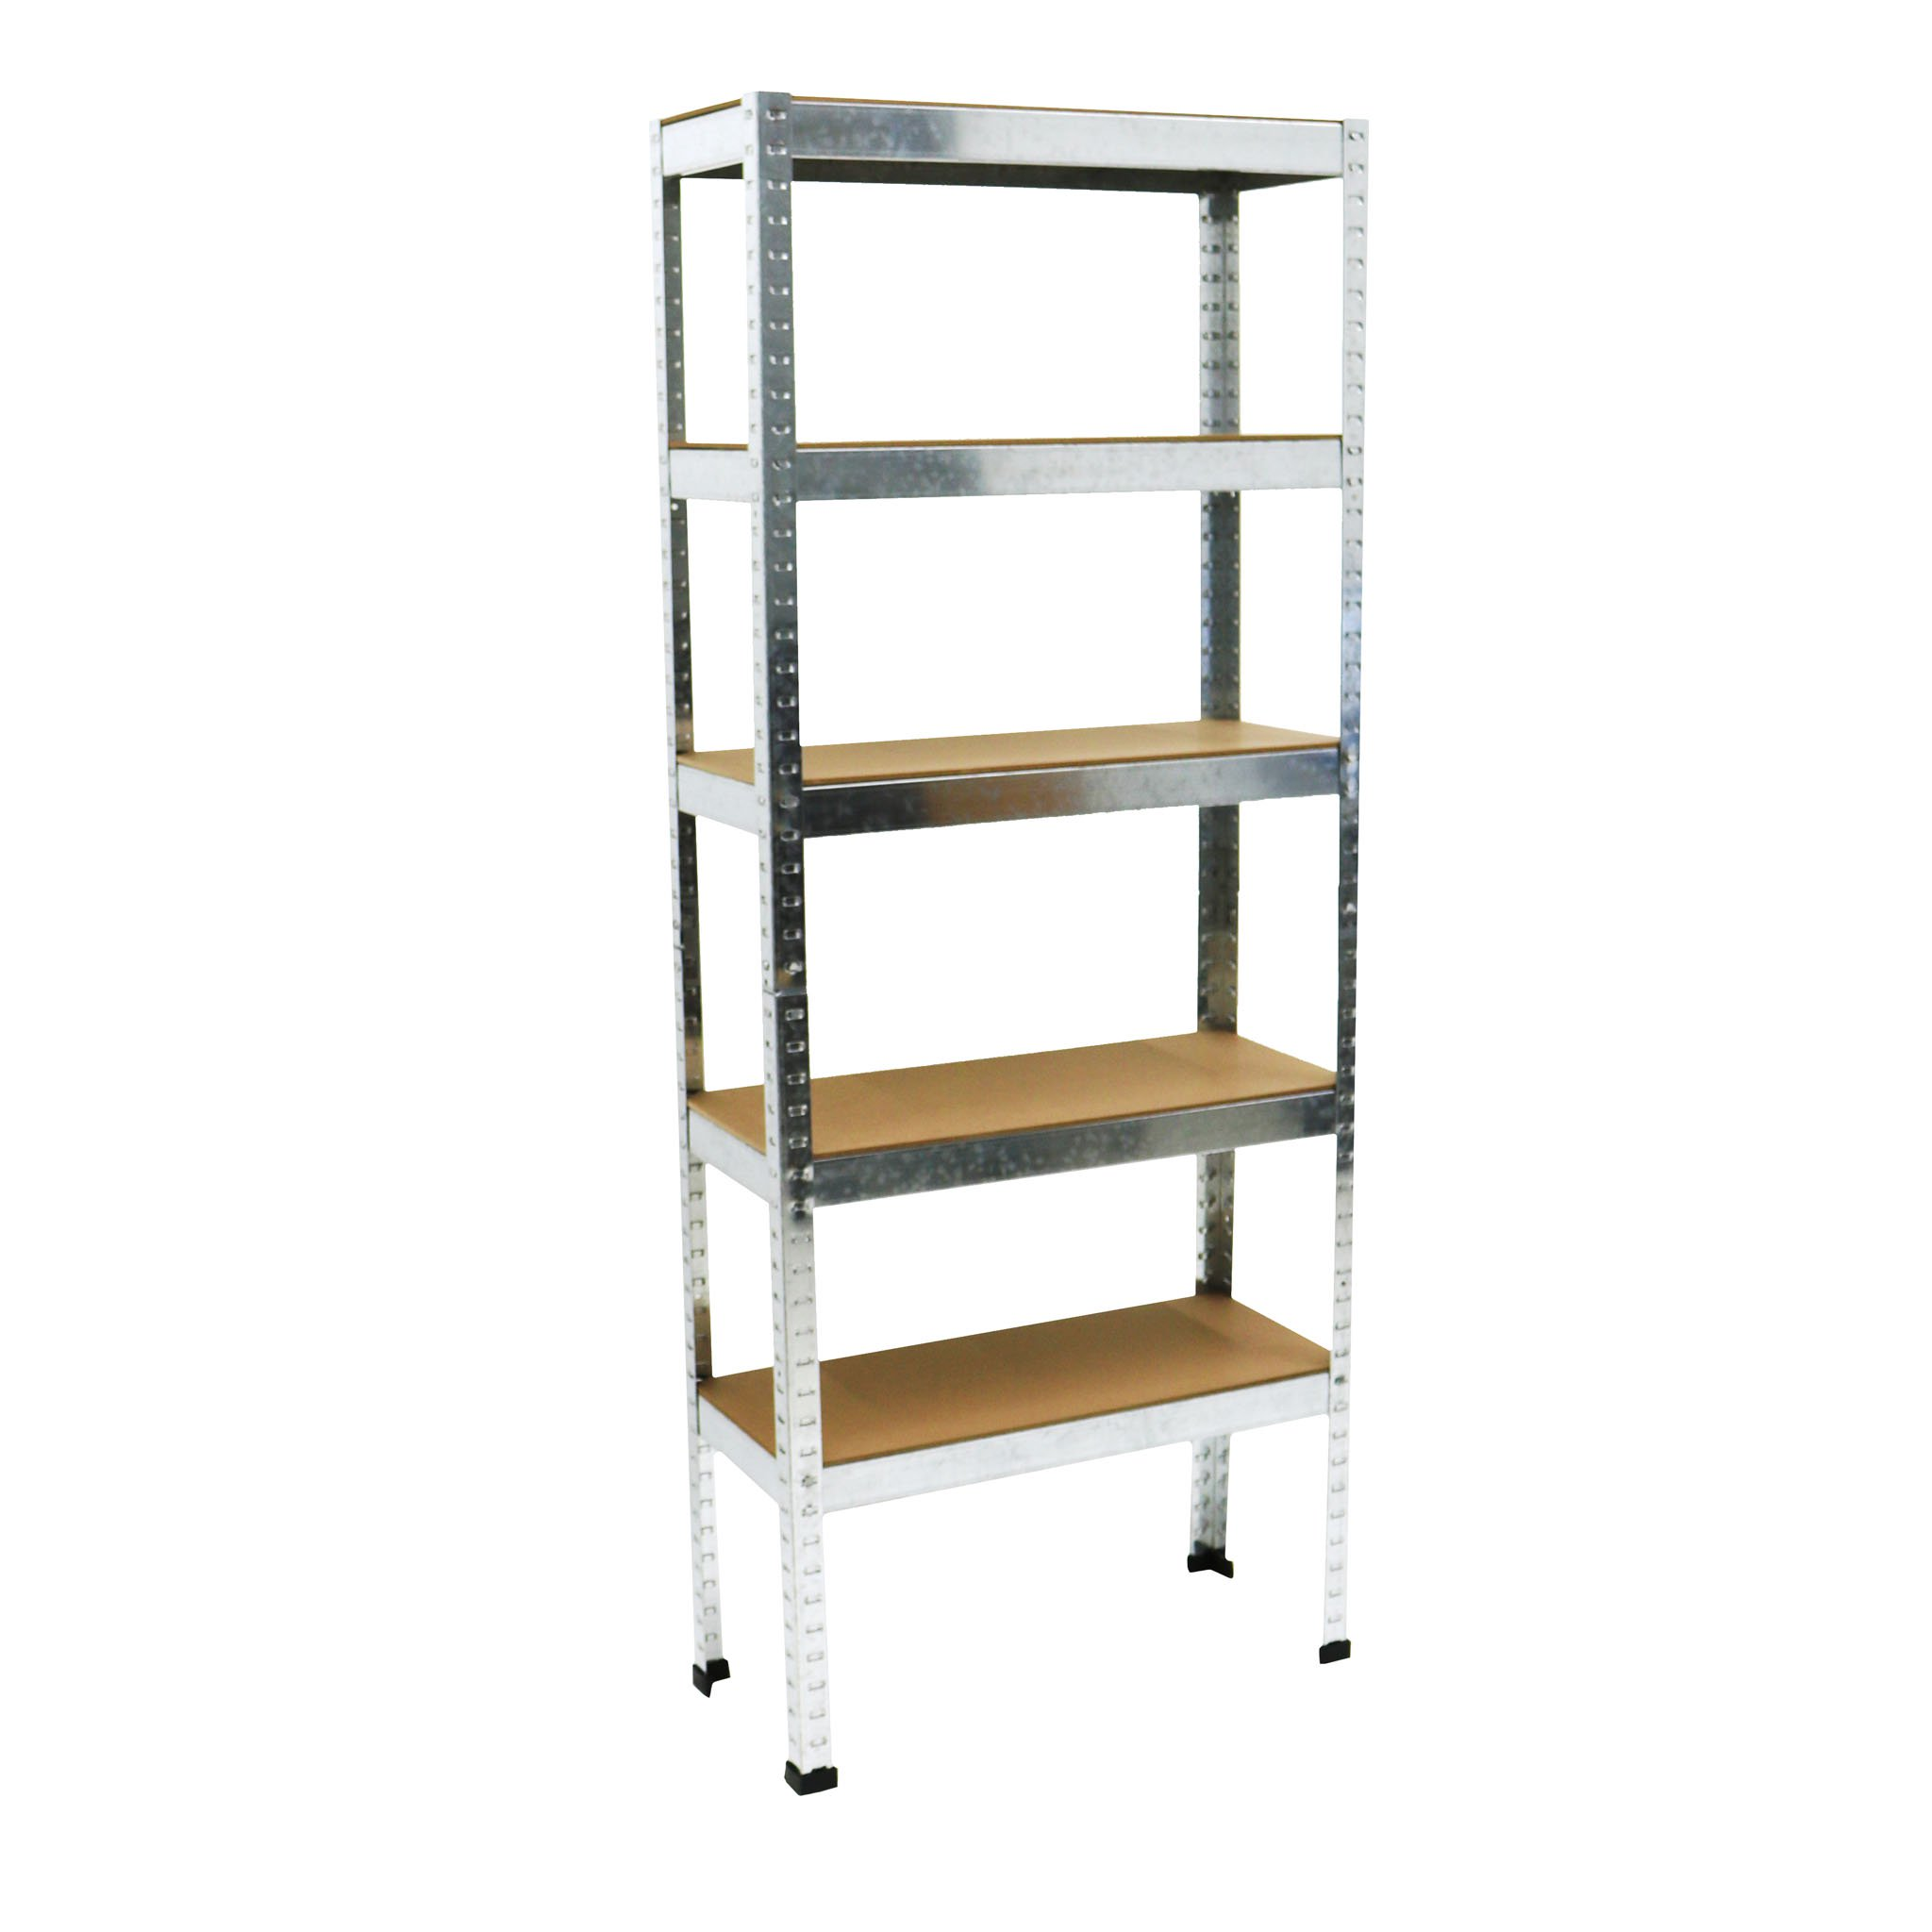 escalating storage here cube s twenty and white bookshelf bookcases options shelves a shelf